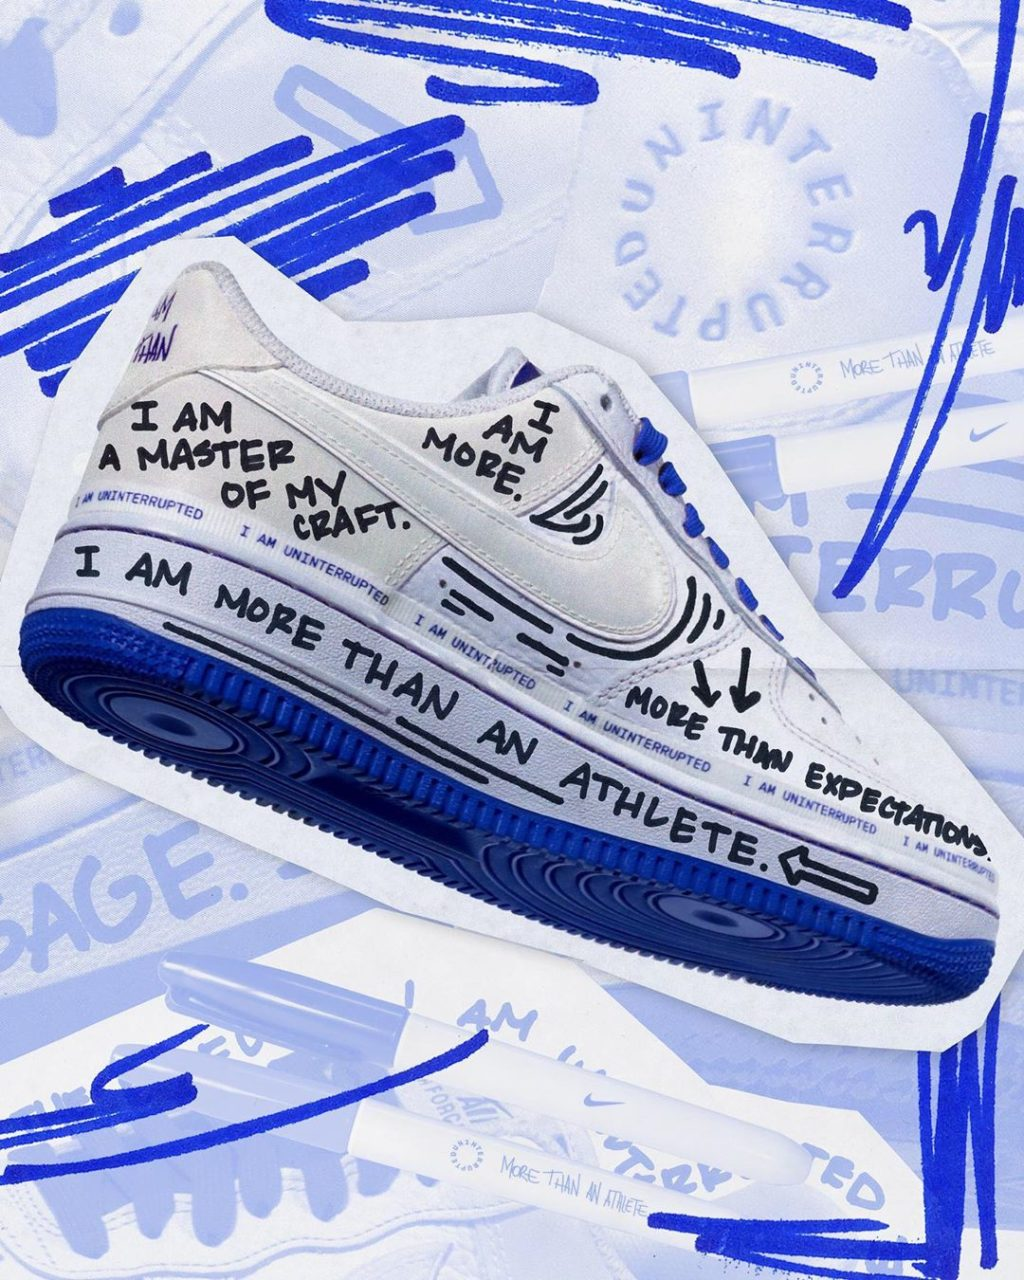 Air Force 1 Uninterrupted More Than An Athlete en 2020